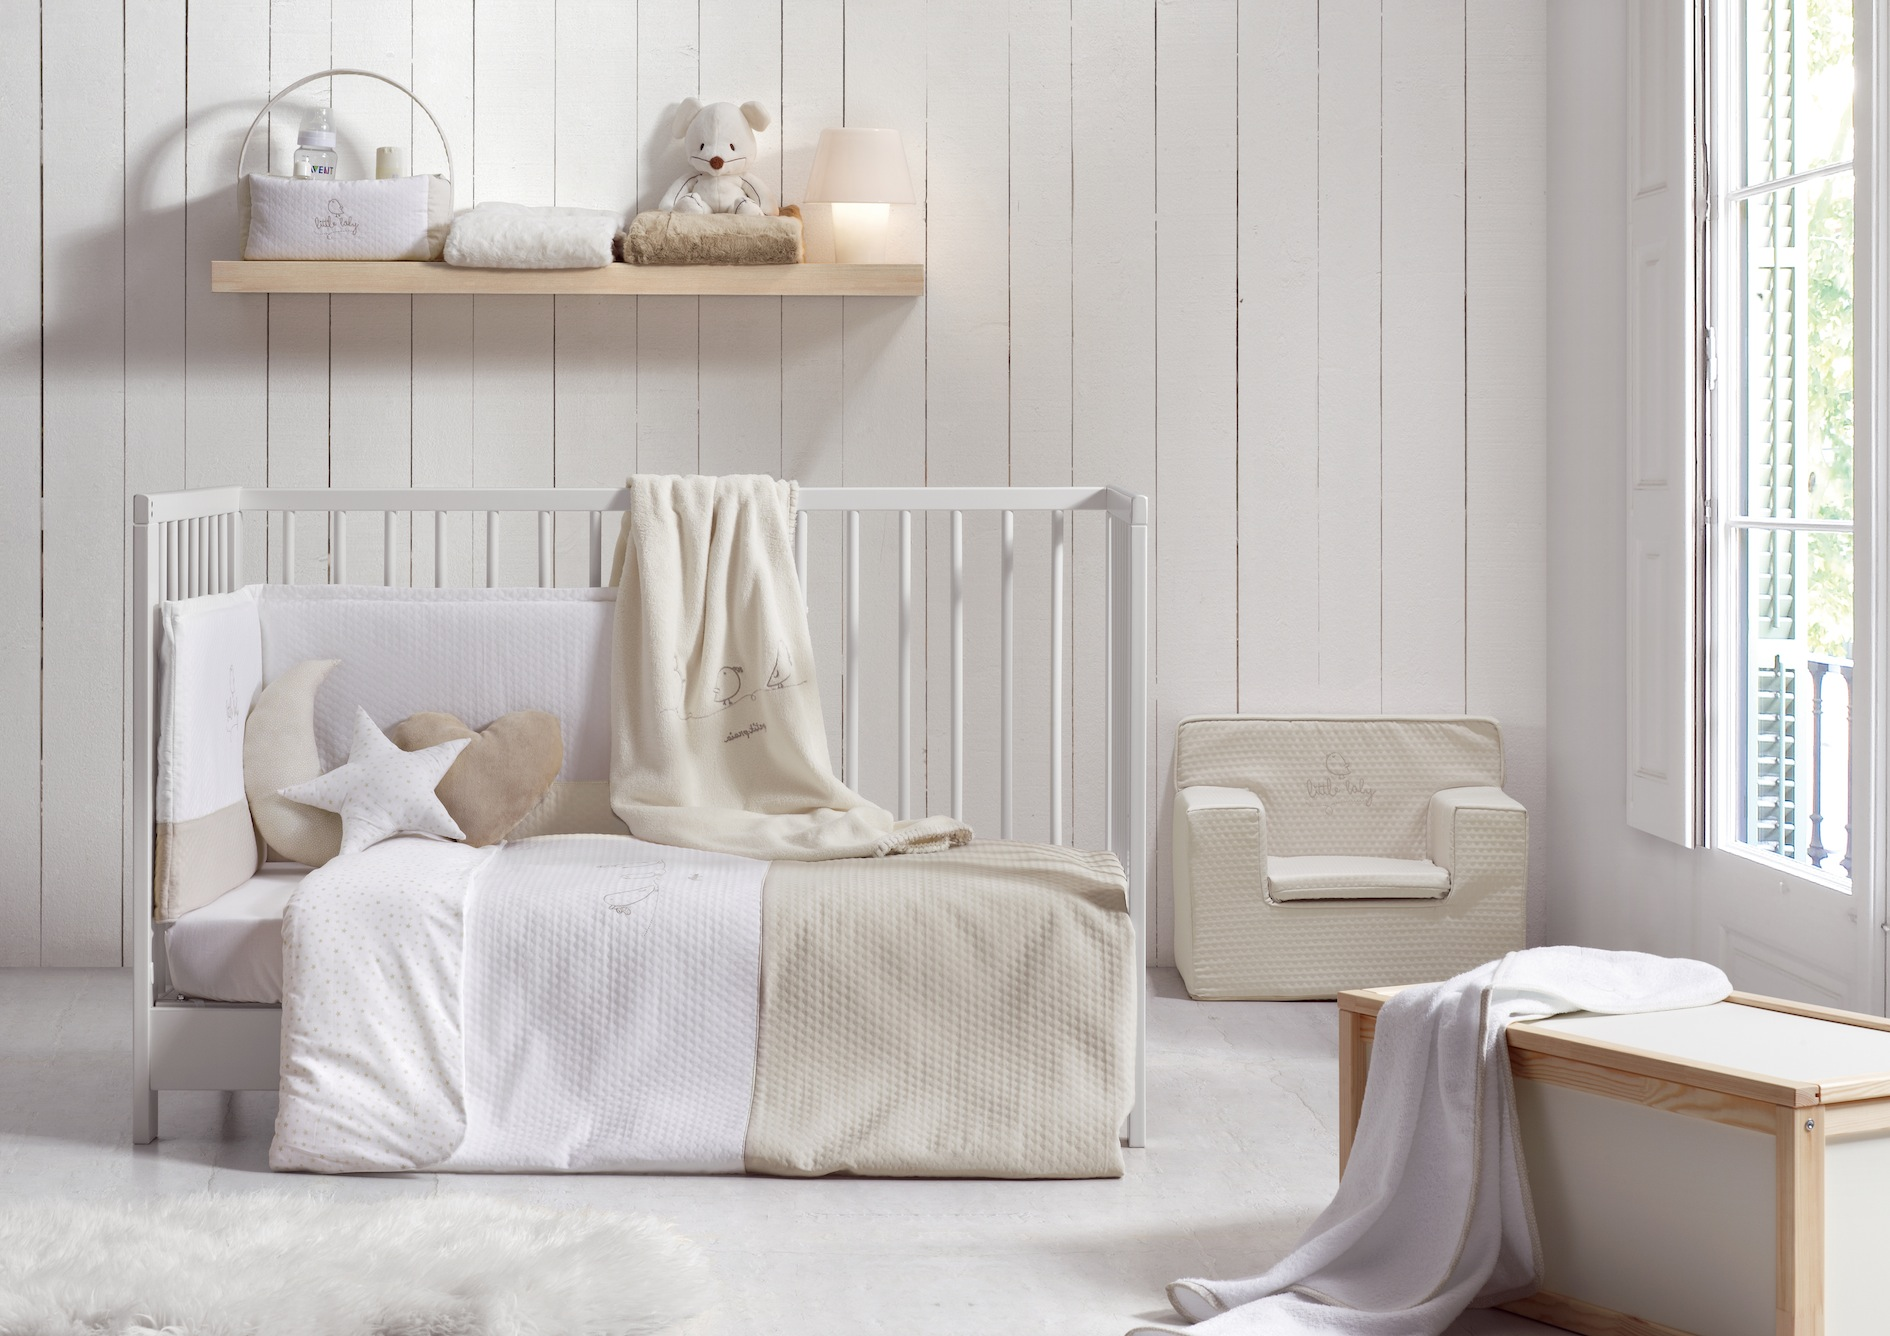 Decorar Dormitorio Bebe 10 Ideas Para Decorar La Habitación Del Bebé Productos